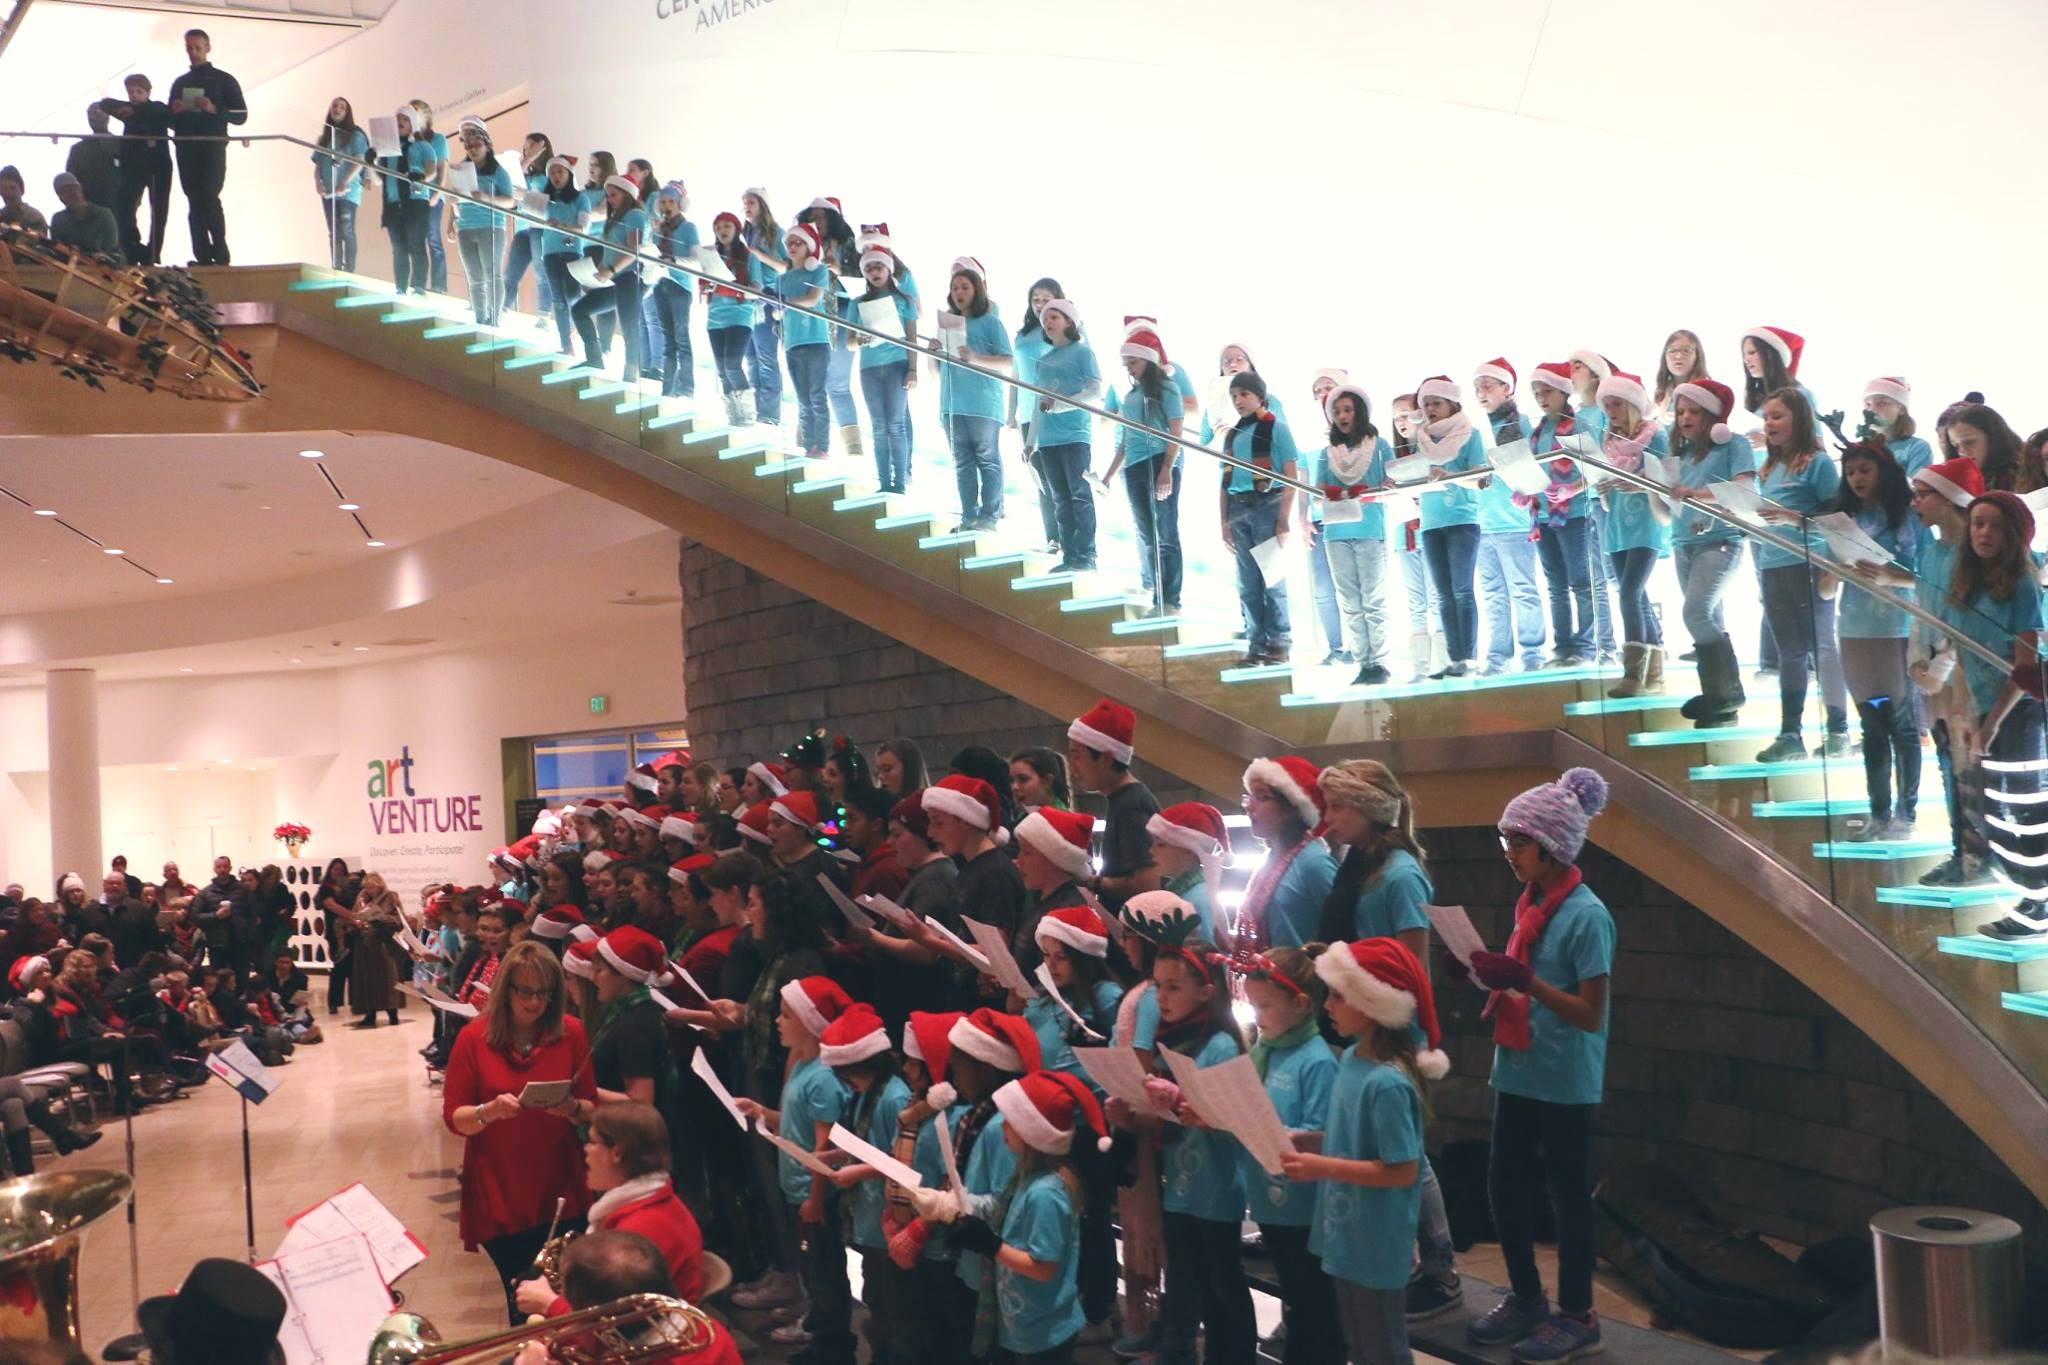 2019 Community Sing-A-Long - Friday, December 13th at 7:30 pm, at the Taubman Museum in Roanoke, VA.Come join us at the 5th Annual Community Sing-A-Long, hosted by the RVCC! With your help, we will be singing classic holiday carols to get into the holiday spirit! Song booklets will be handed out at the door.*No ticket necessary. Come on by and sing with us, it's free and fun!